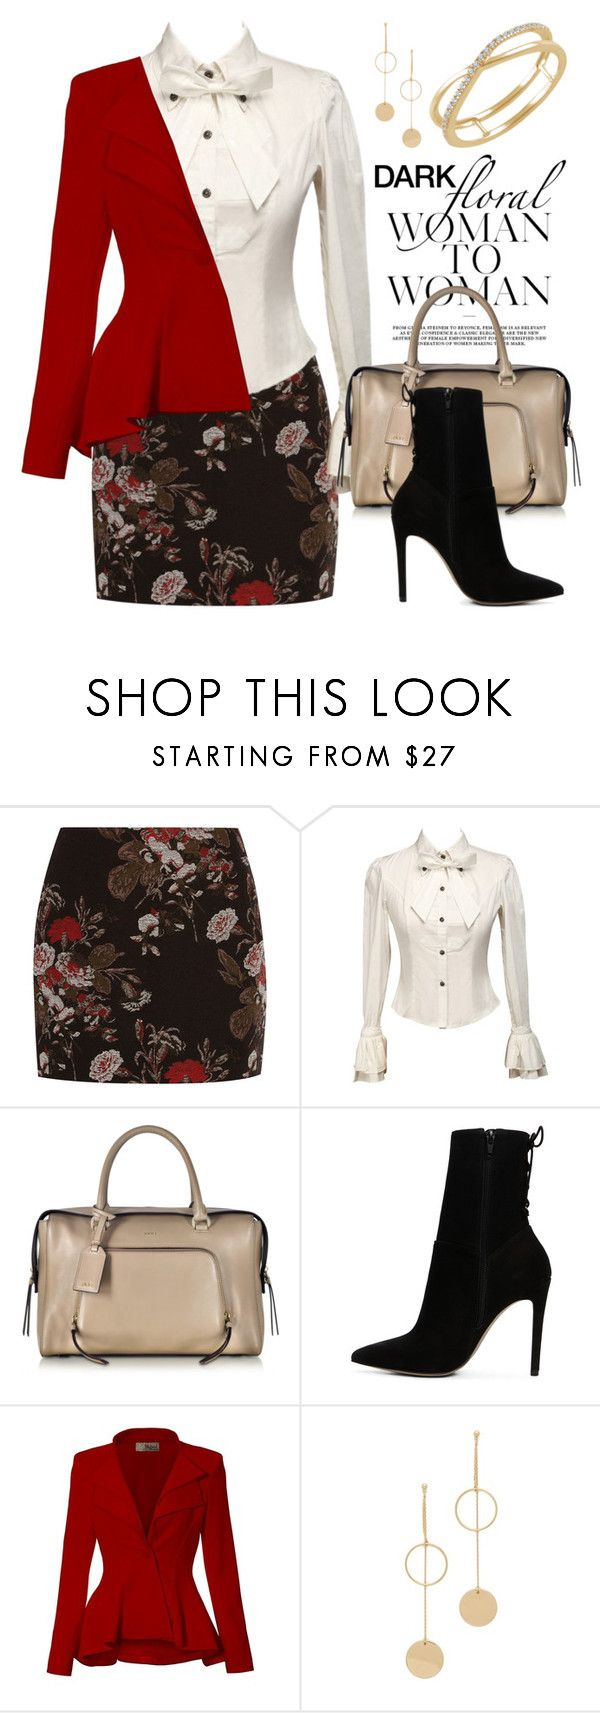 """""""In Bloom: Dark Florals 2918"""" by boxthoughts ❤ liked on Polyvore featuring Ganni, DKNY, ALDO, Hybrid & Company, Cloverpost and darkflorals"""